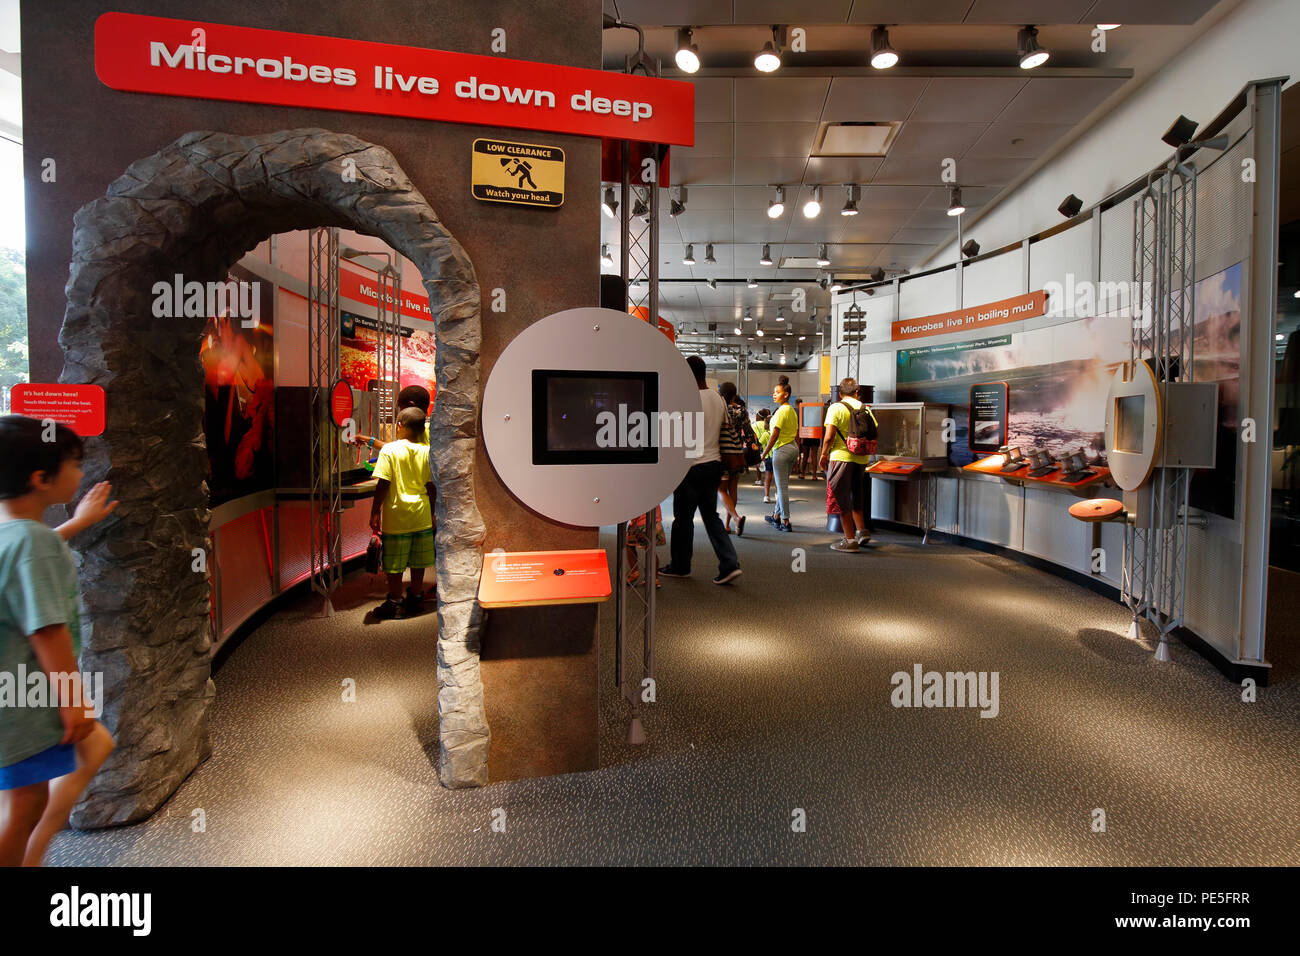 World of Microbes interactive exhibit at the New York Hall of Science - Stock Image